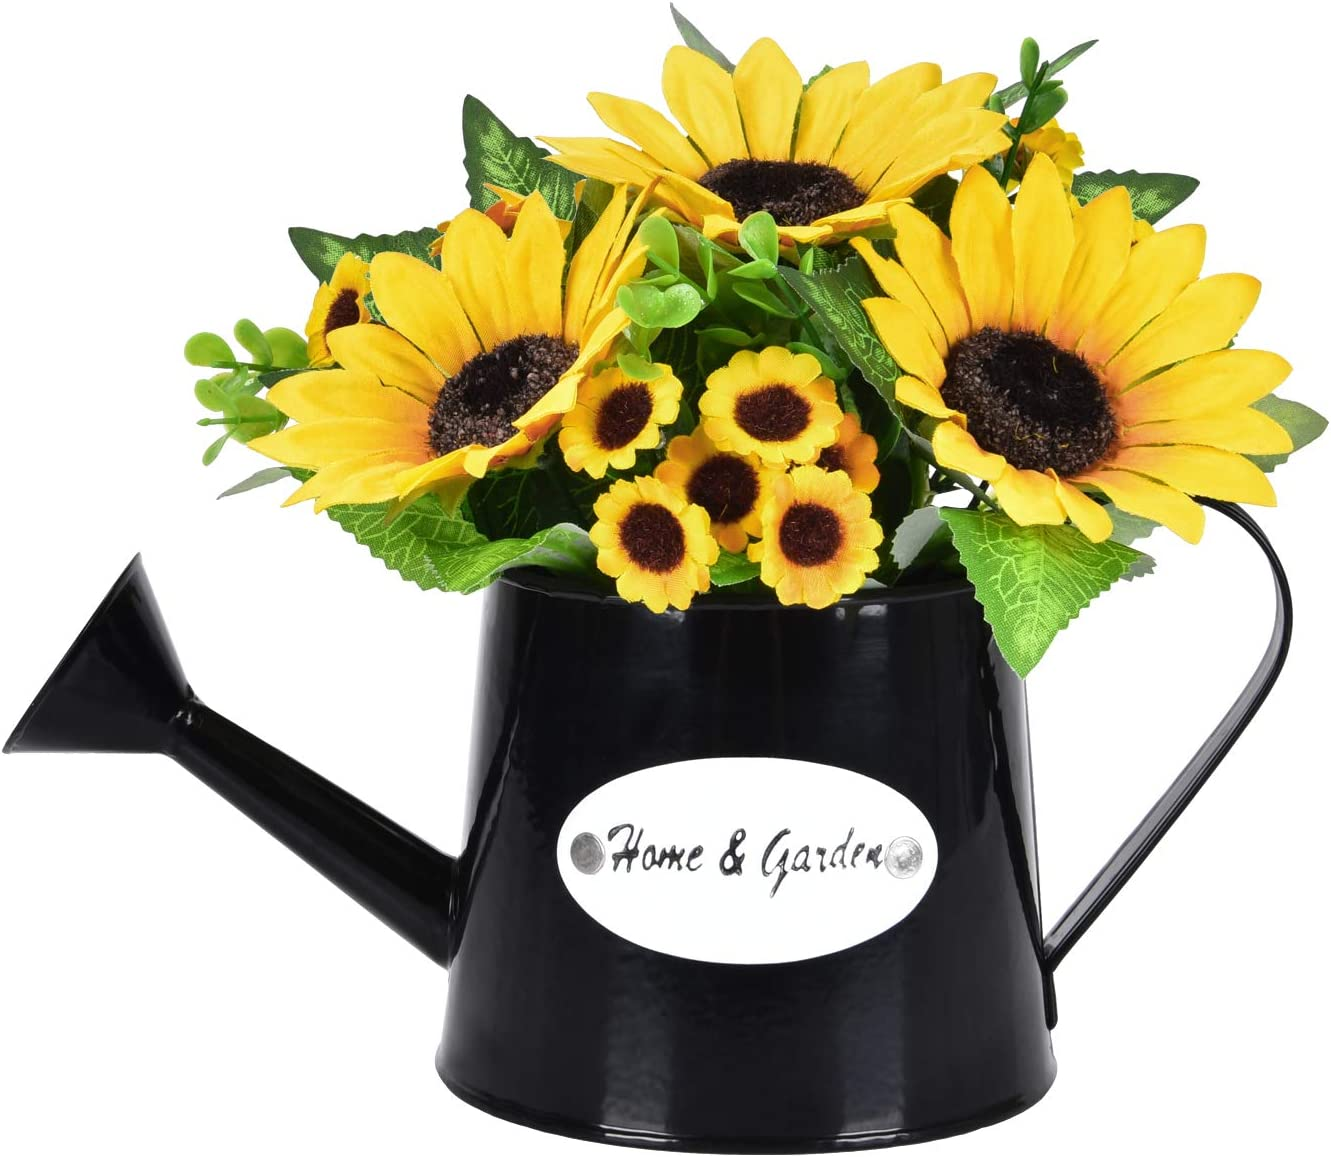 Dolicer Artificial Sunflower Watering Pot Shape Bonsai, 1 Pc Artificial Sunflower with Vase Pot Fake Flower Artificial Sunflowers Bouquet for Party Office Garden Table Home Decor (Yellow)